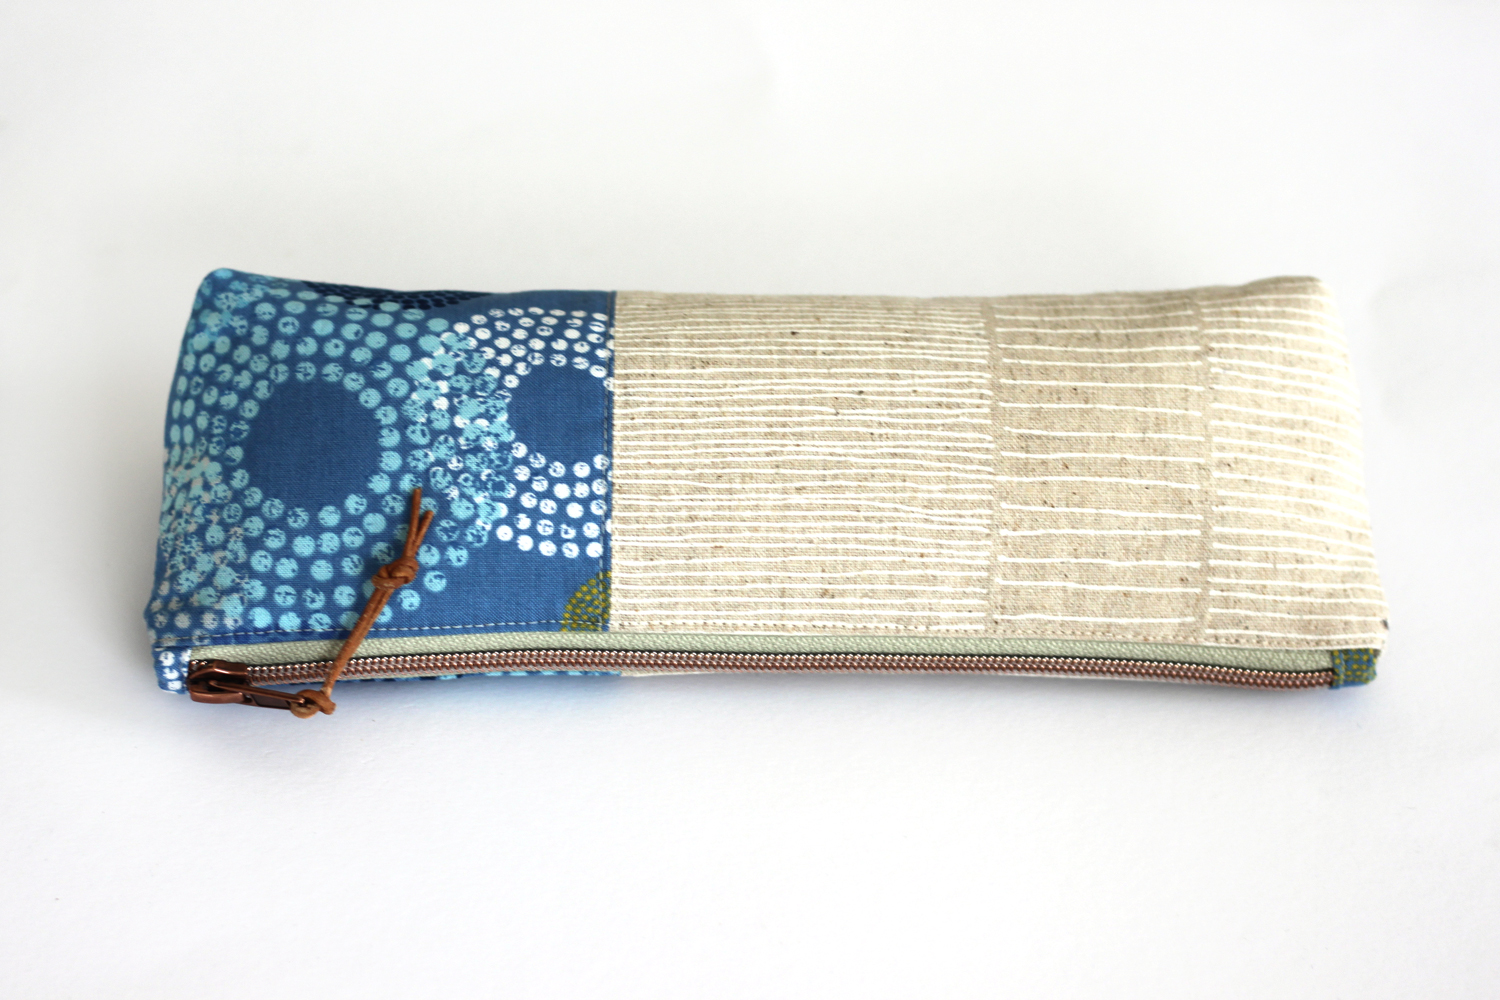 The heavy texture of Zen Chic's Mochi Linen make it a perfect choice for projects like pencil cases, glass cases, handbags, and a ton of other home decor and accessory possibilities. This nice little bag is uses the  free pattern Canvas Pencil Pouch from Noodlehead .